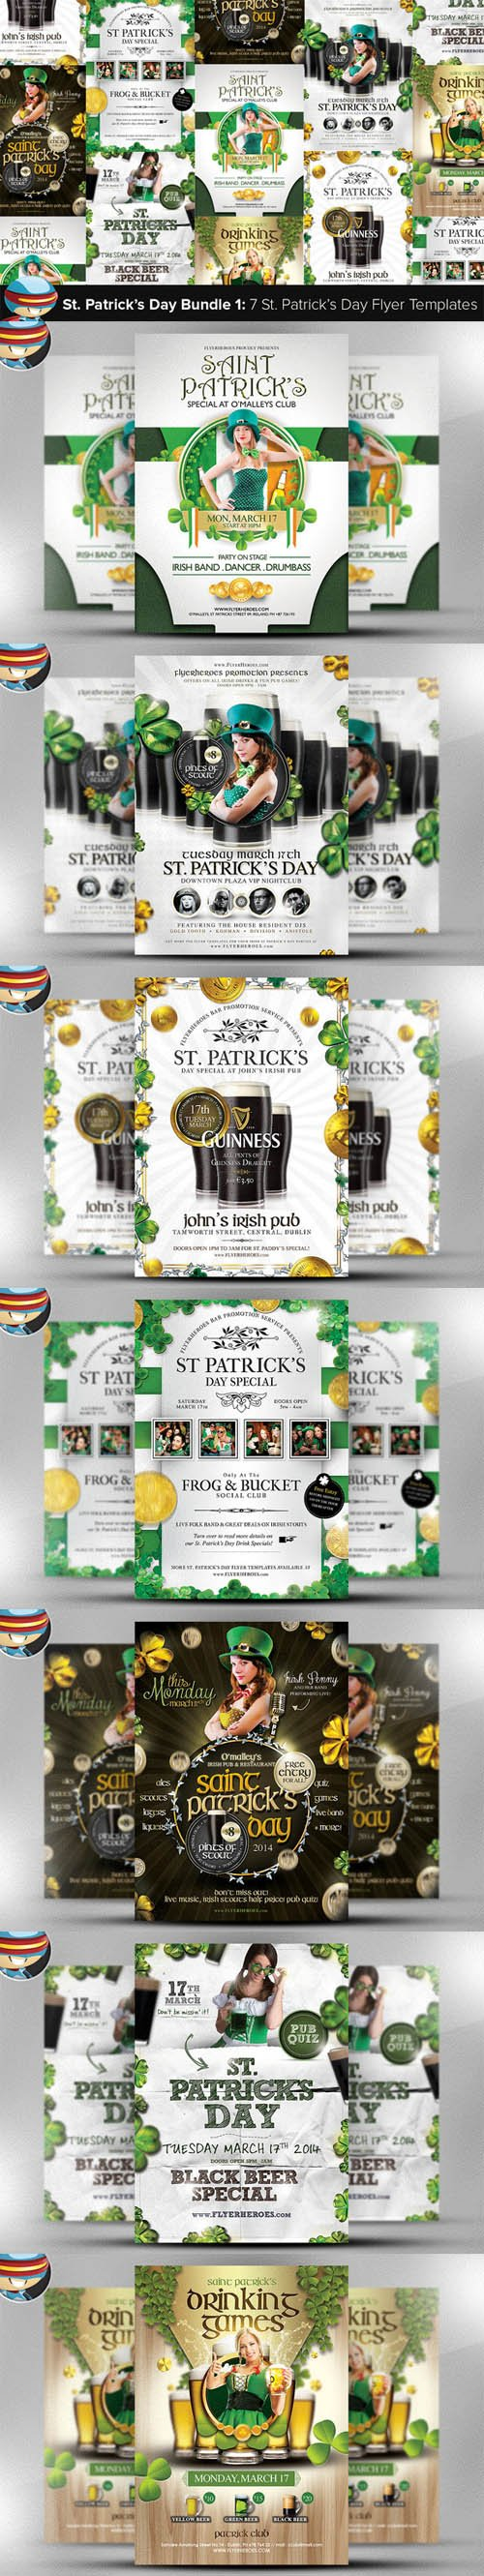 Saint Patrick's Day Bundle 1 - Creativemarket 202749